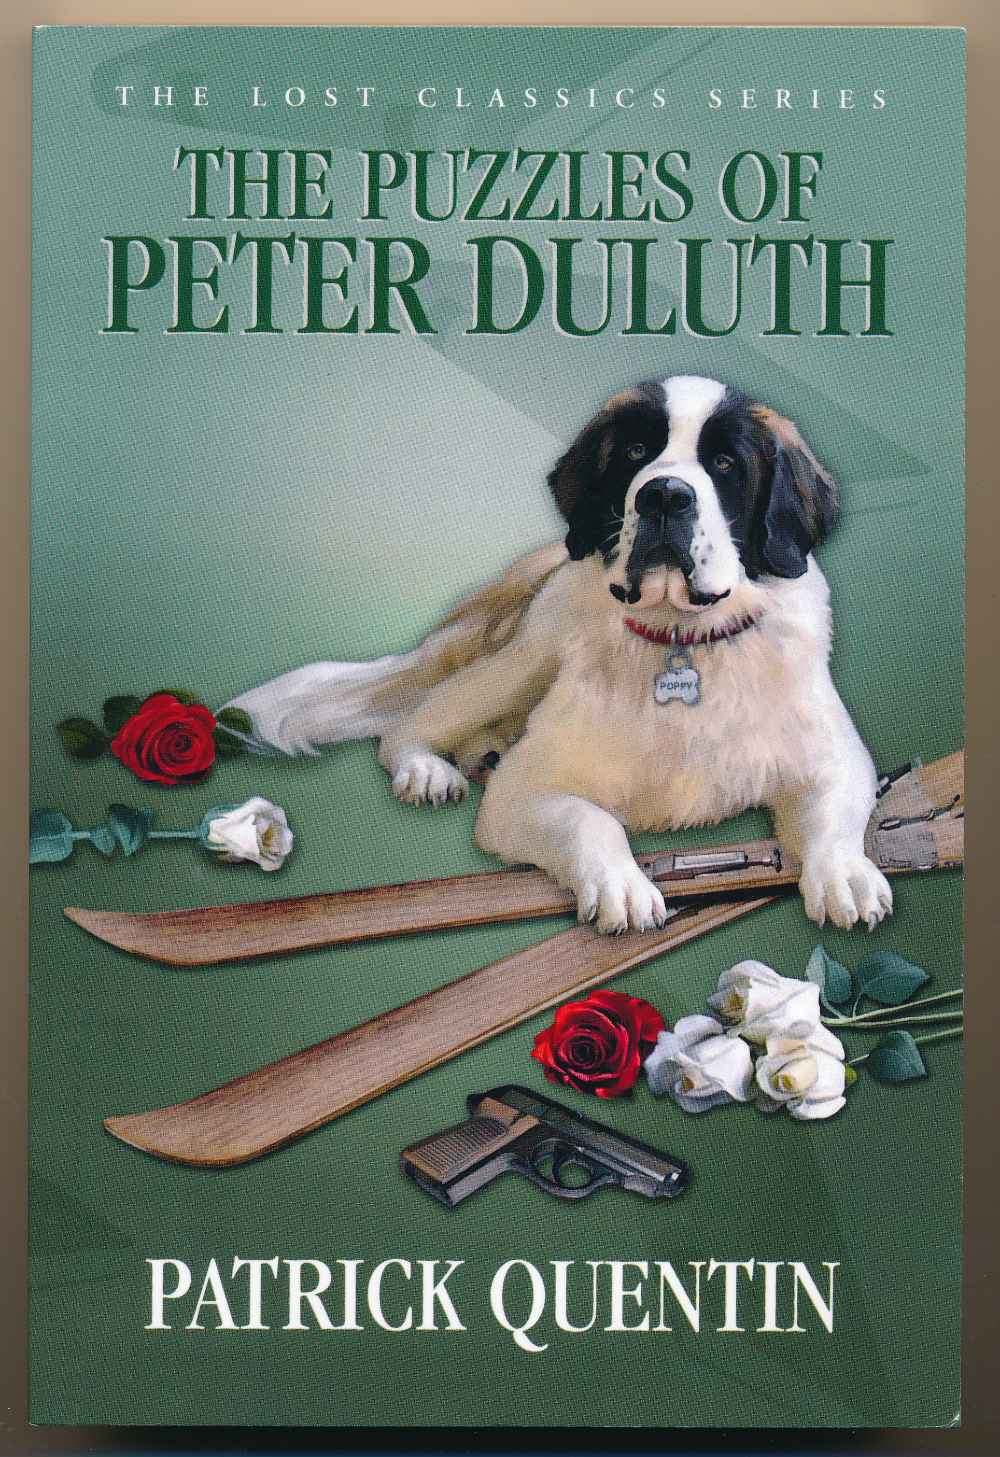 The puzzles of Peter Duluth